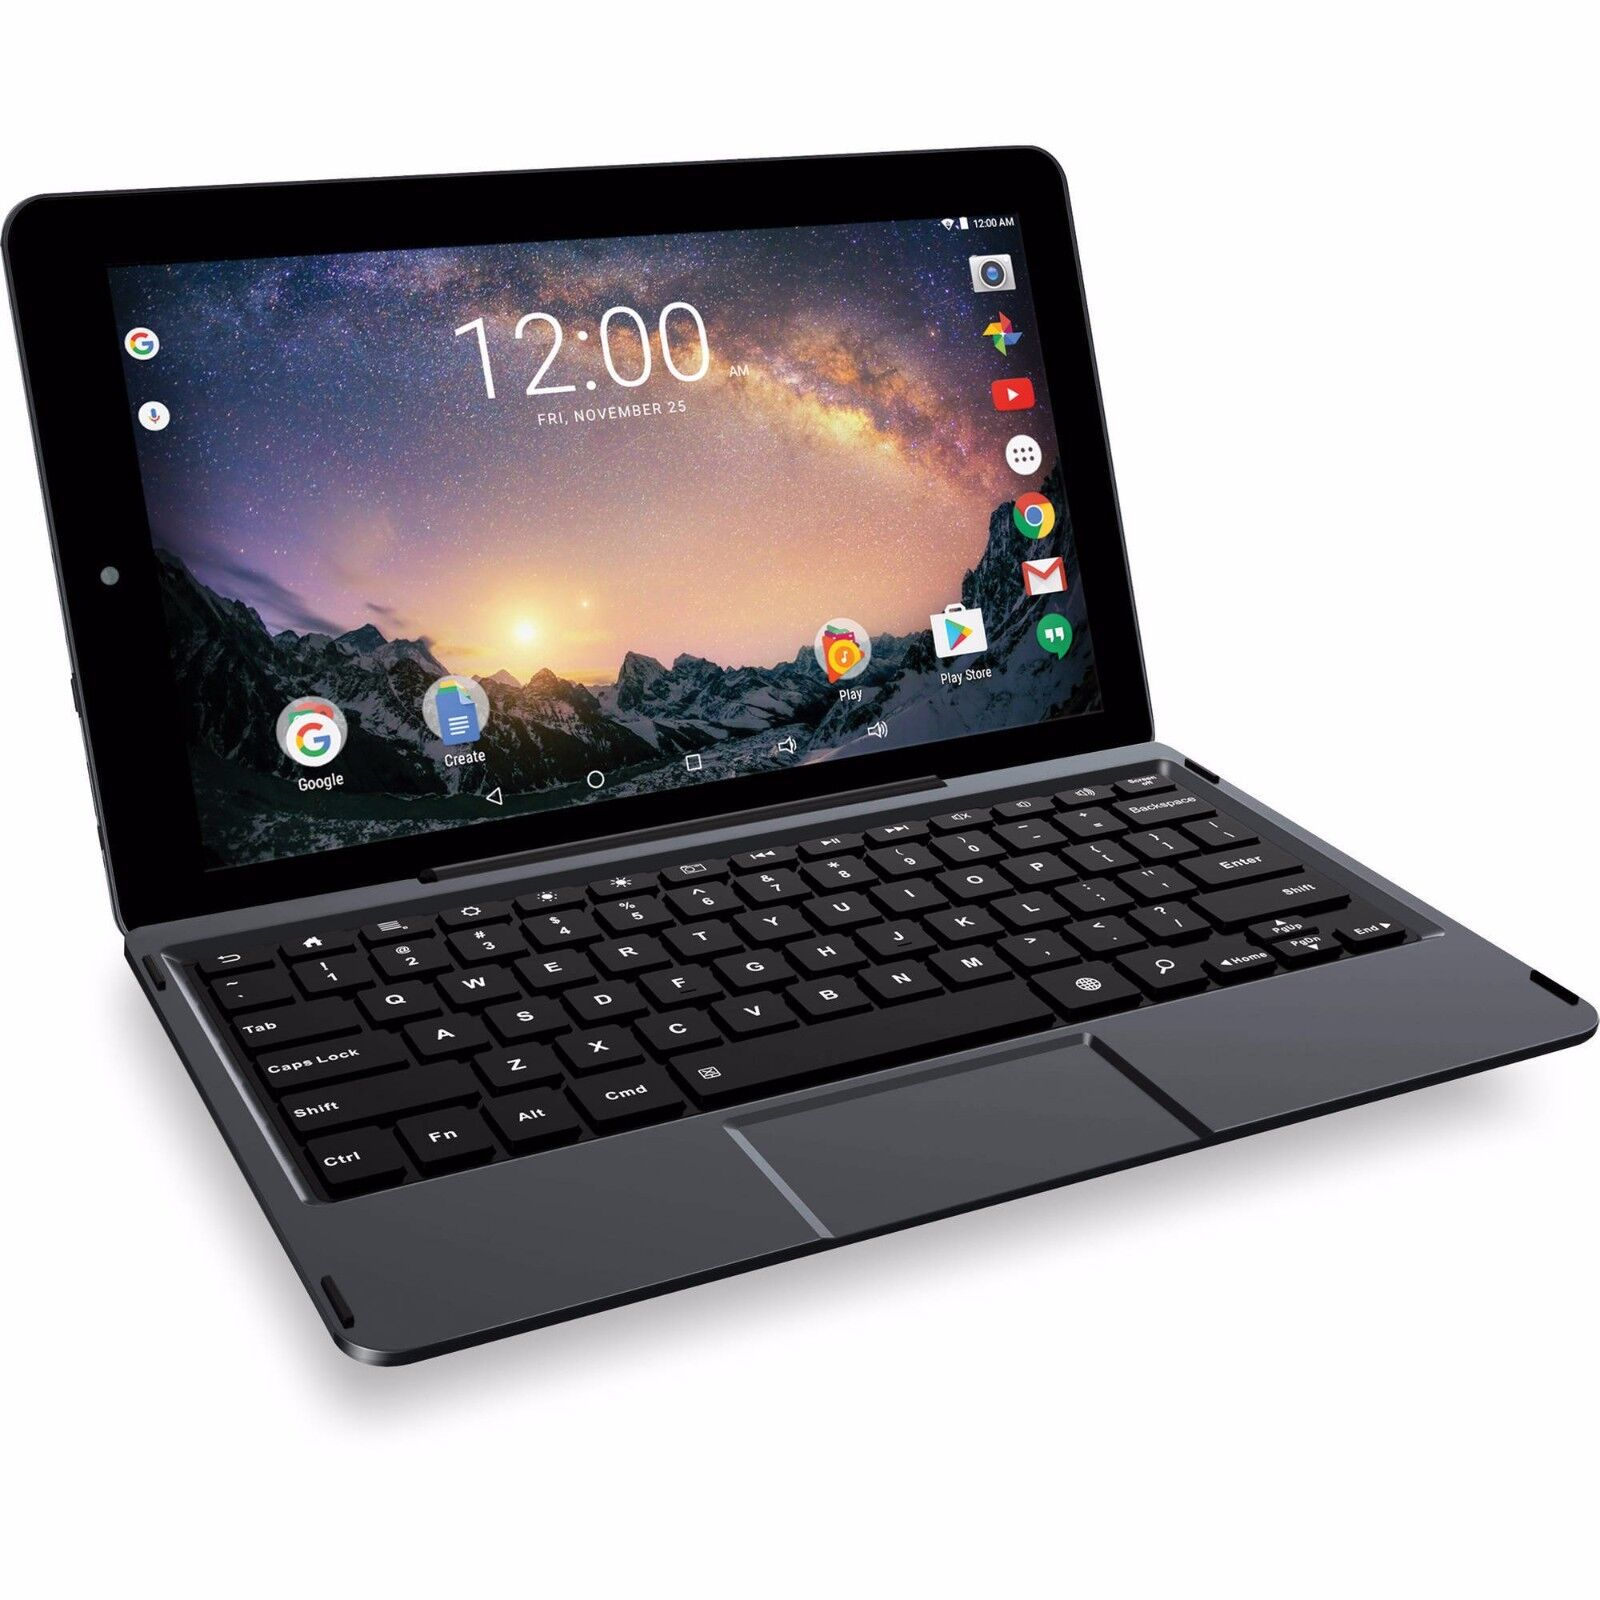 $98.81 - RCA Galileo 32GB Pro 11.5 Touchscreen QuadCore Android 6.0 Keyboard Tablet BLACK